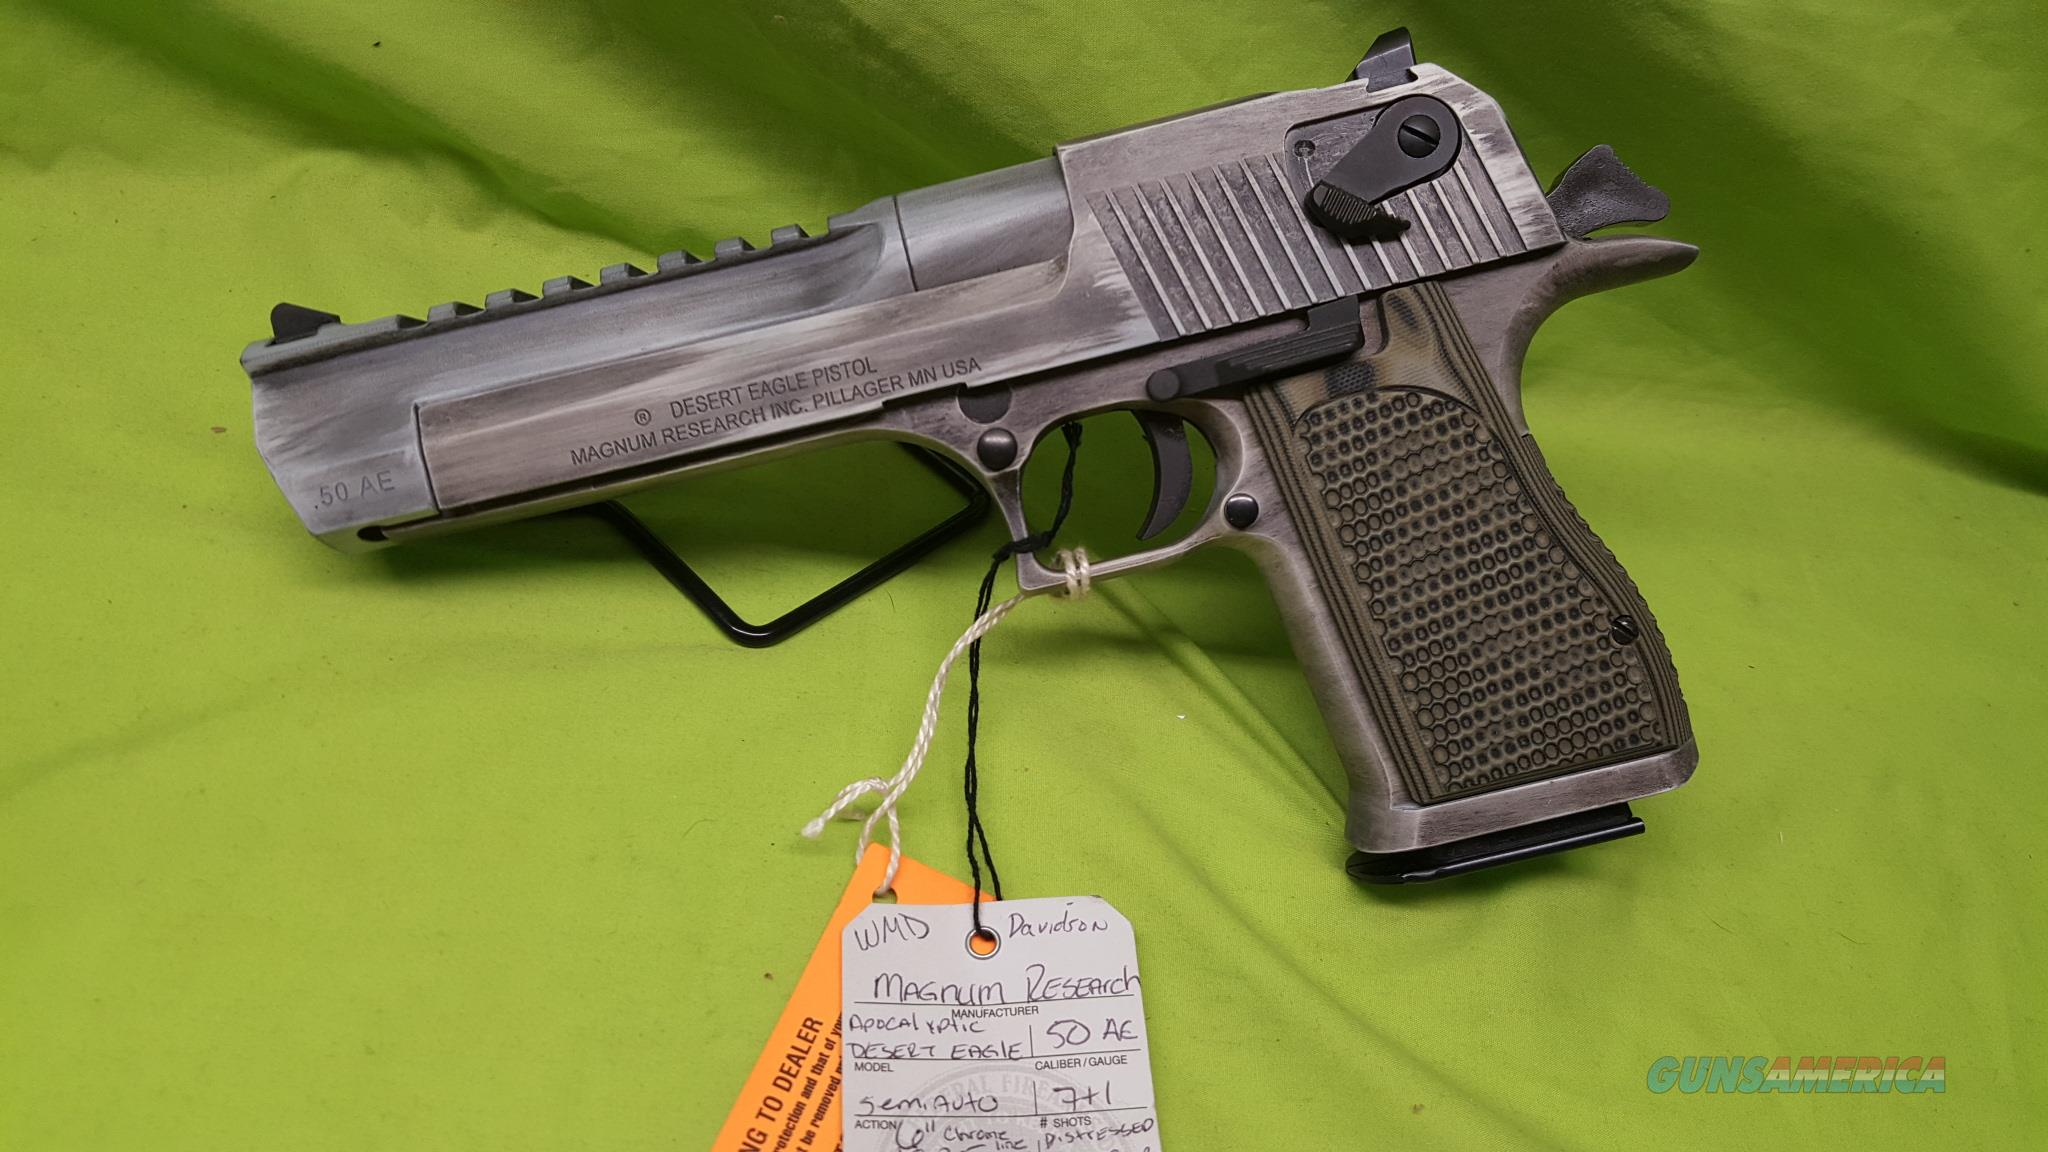 MAGNUM RESEARCH APOCALYPTIC DESERT EAGLE 50AE MK19  Guns > Pistols > Magnum Research Pistols